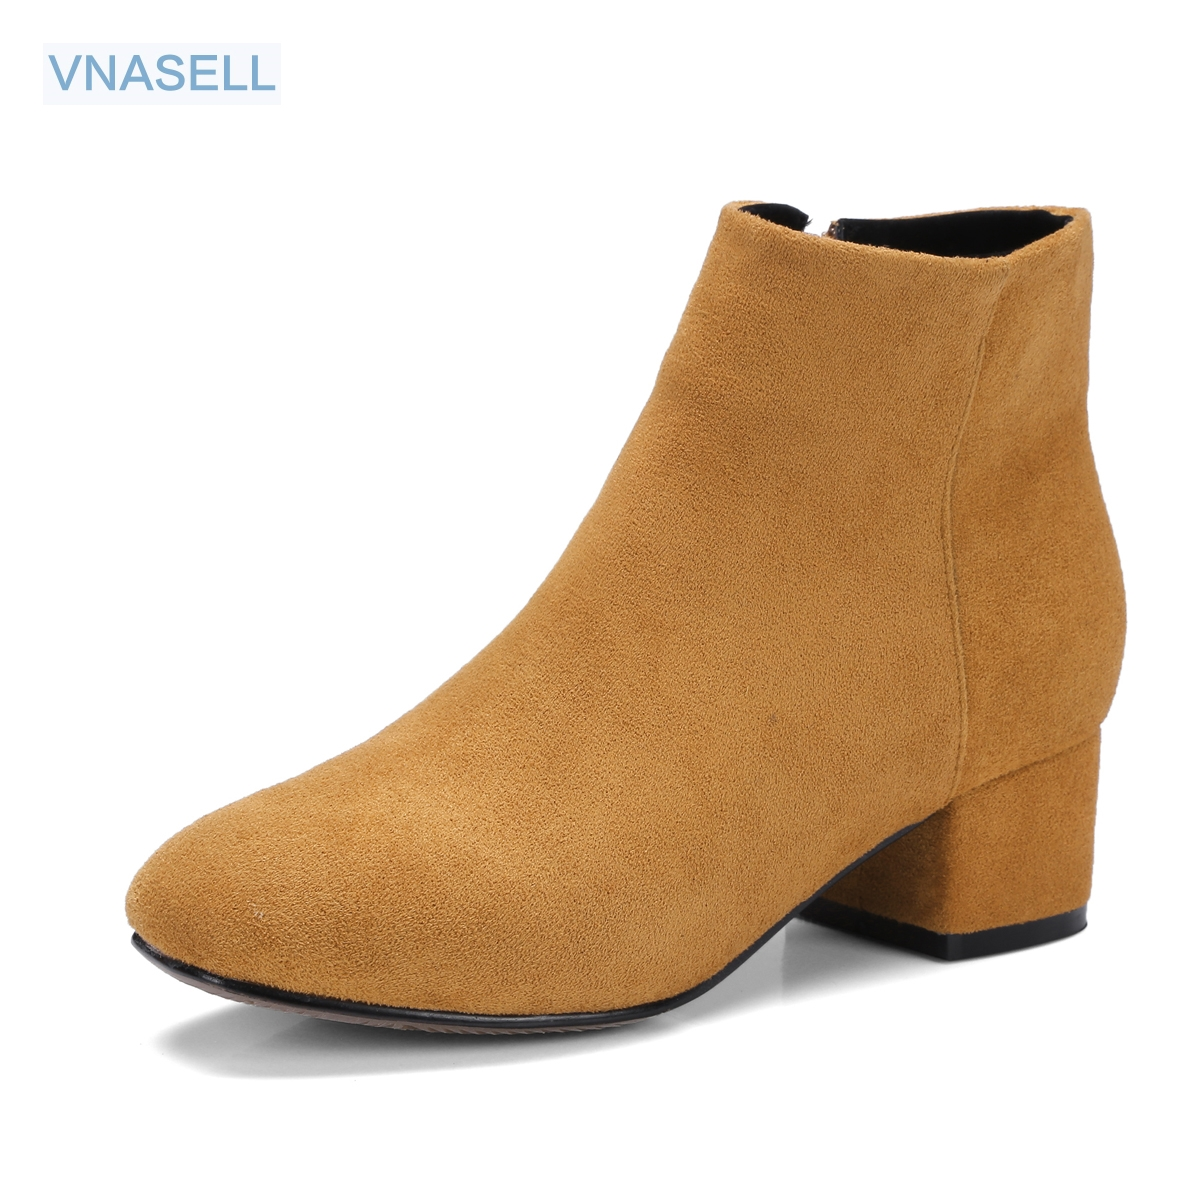 Vnasell Fashion genuine leather ankle boots, round toe, square heel, solid color, Short Plush, 7 colors size 34 -41 42 43 high quality full grain leather solid boots size 40 41 42 43 44 zipper design round toe square heel boots